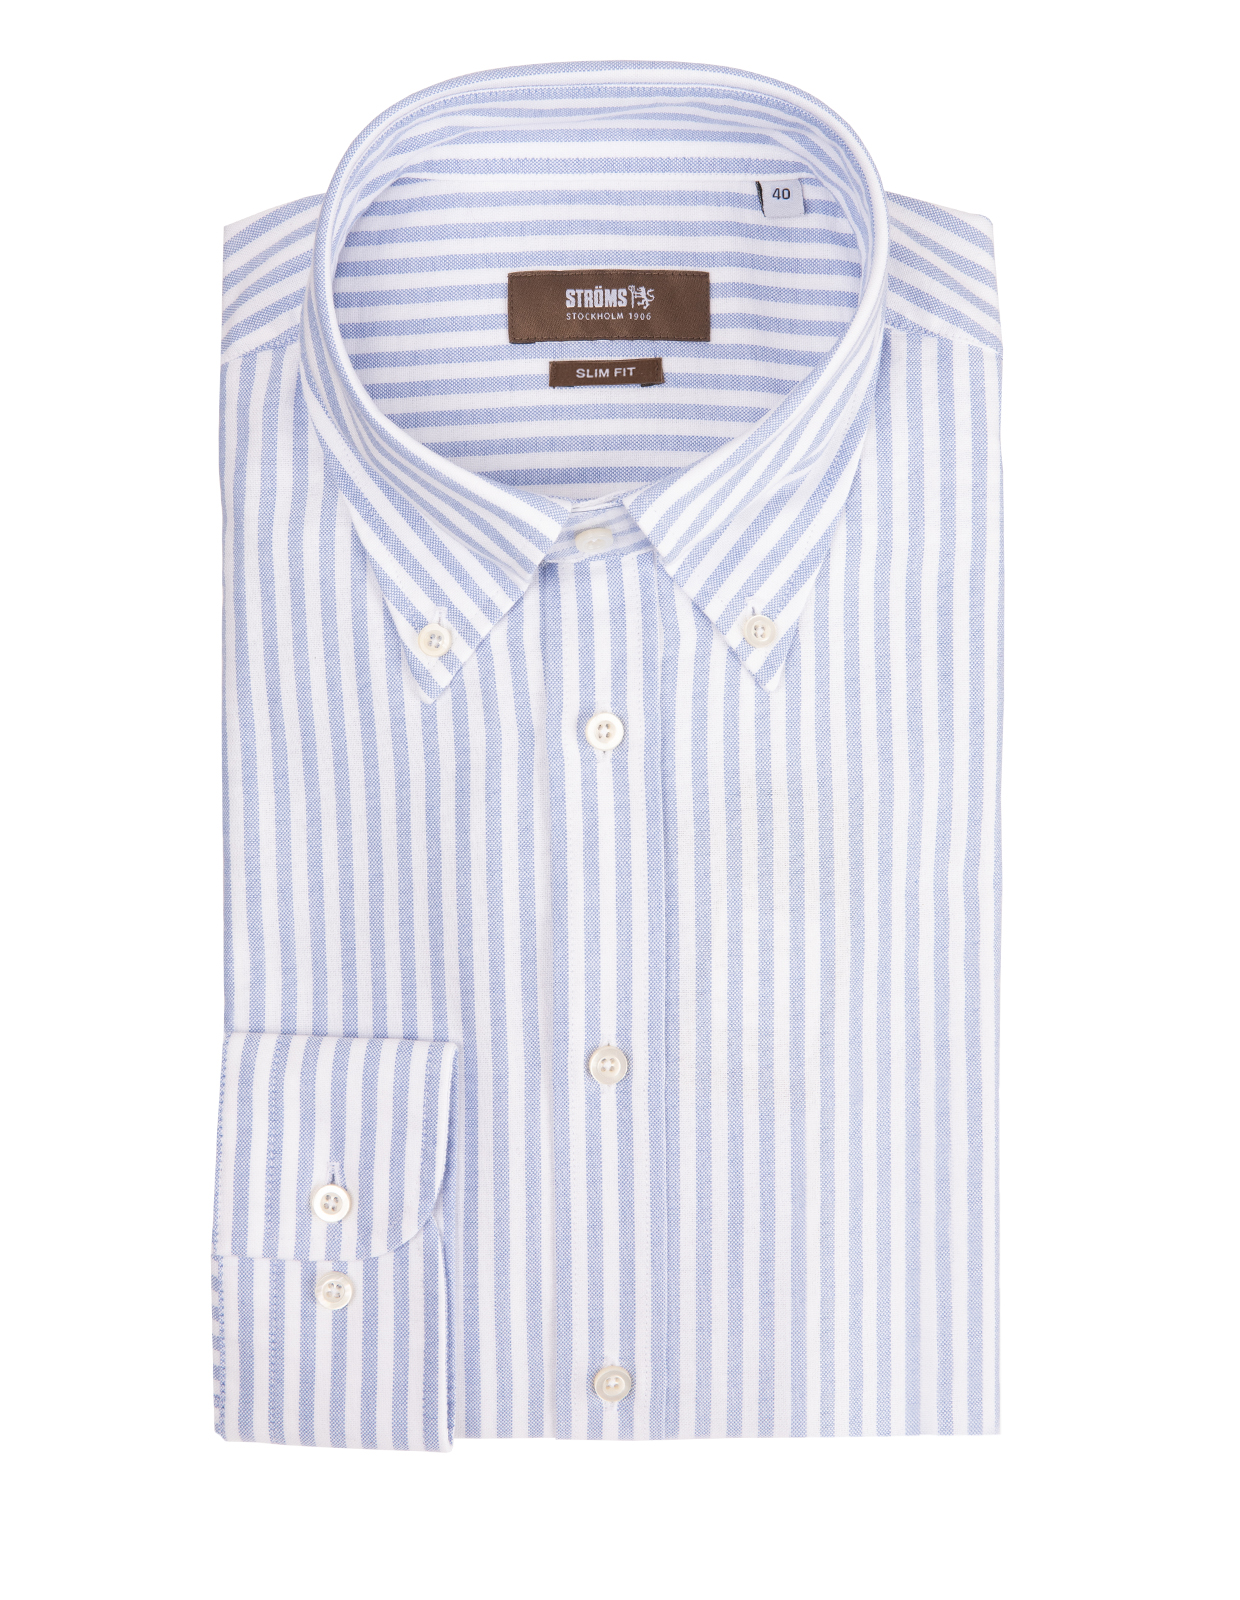 Slim Fit Button Down Oxford Shirt Blue/White